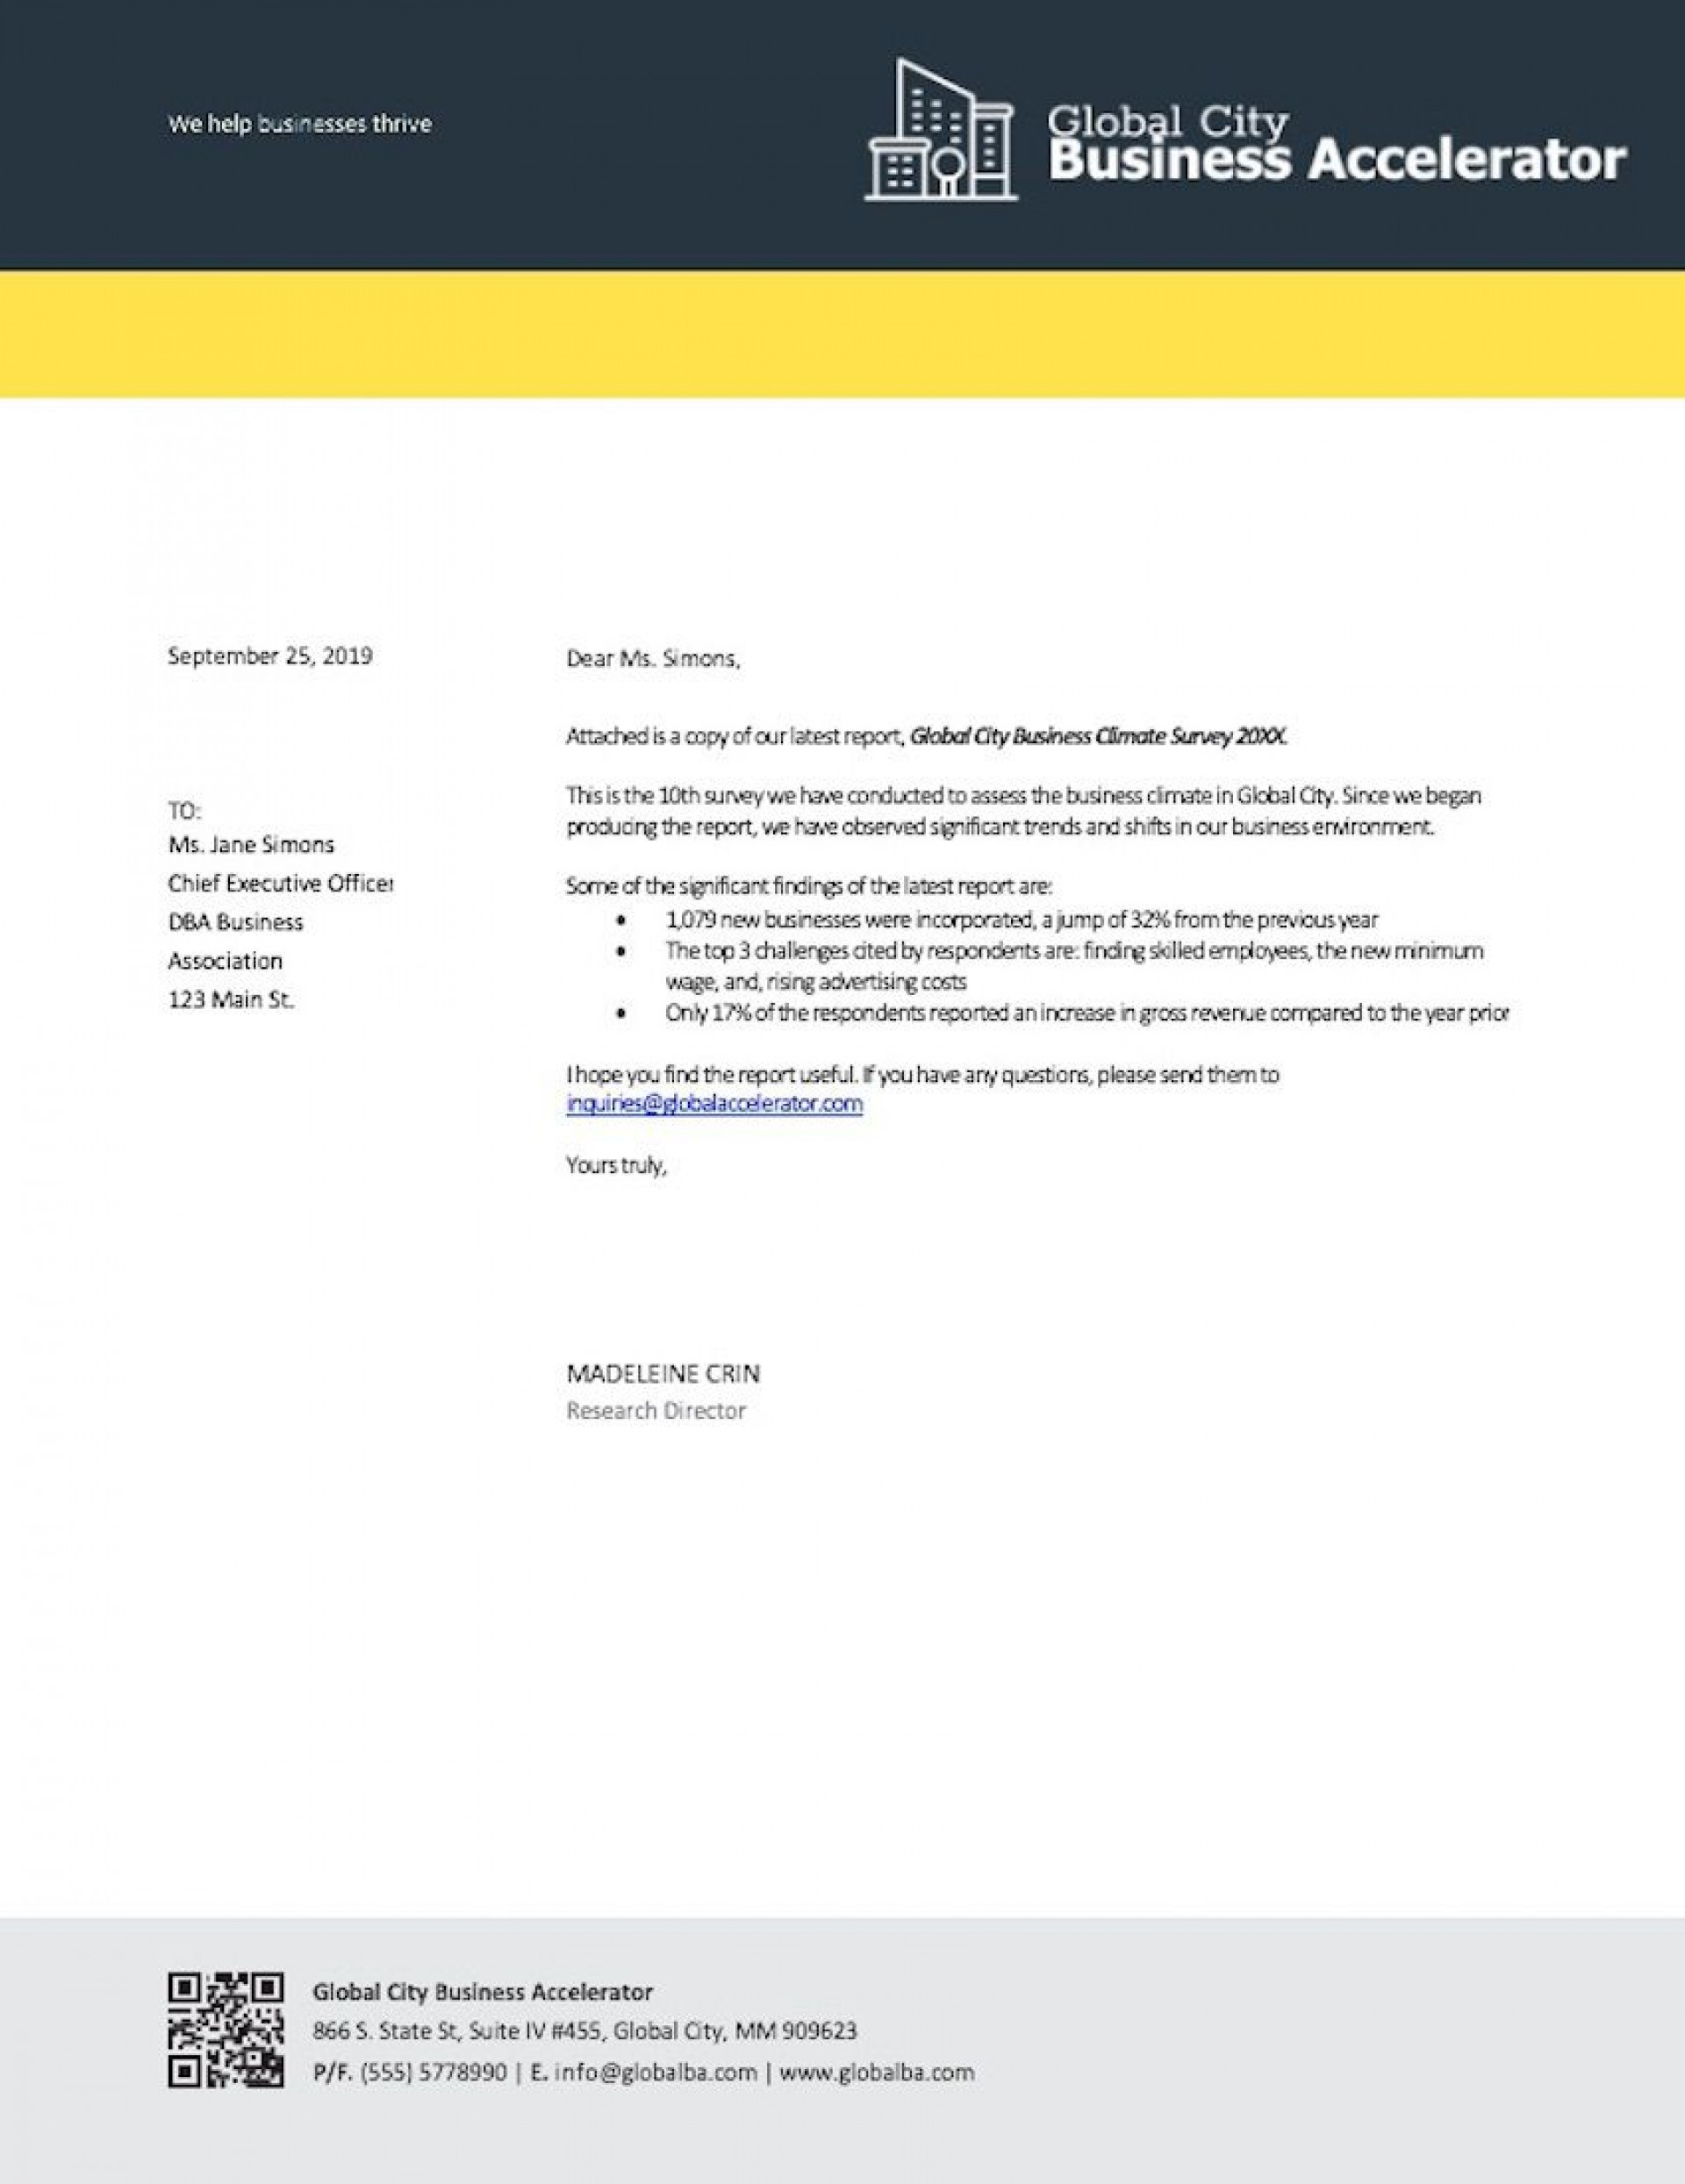 007 Awful M Word Thank You Note Template Highest Quality  Microsoft Interview Letter1920